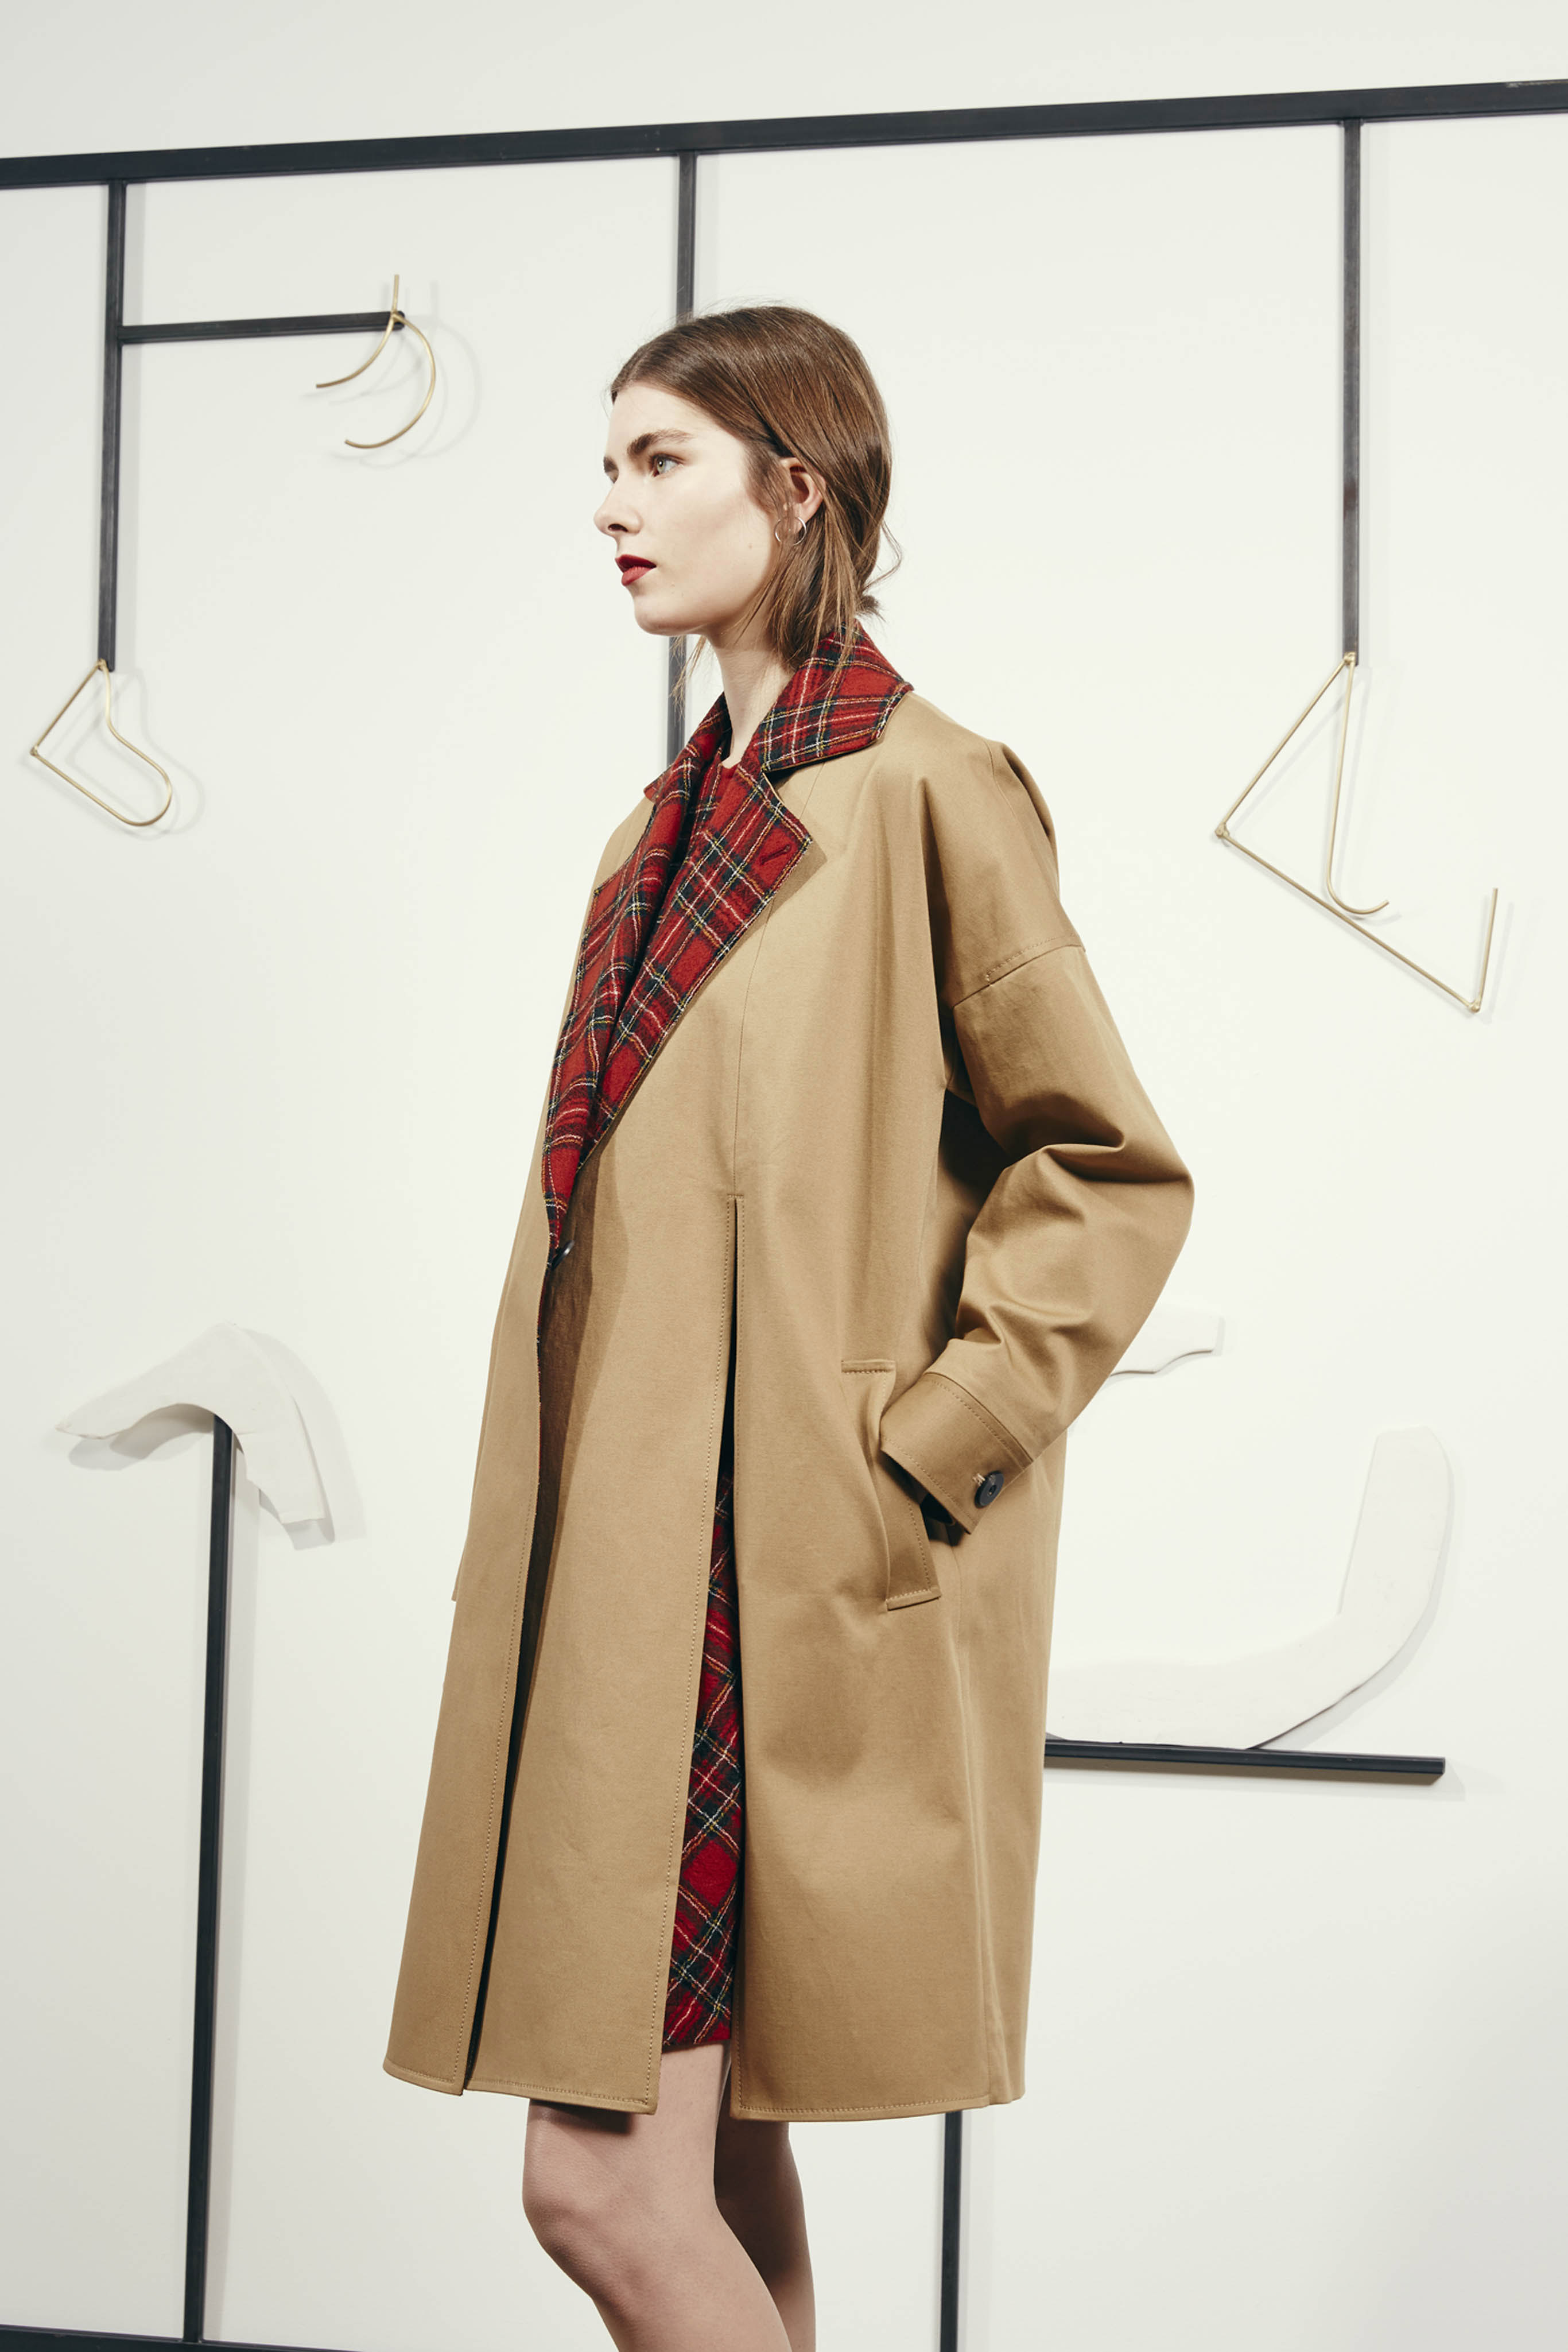 Rosetta Getty Pre-Fall 2016 (Photo: Courtesy Rosetta Getty).